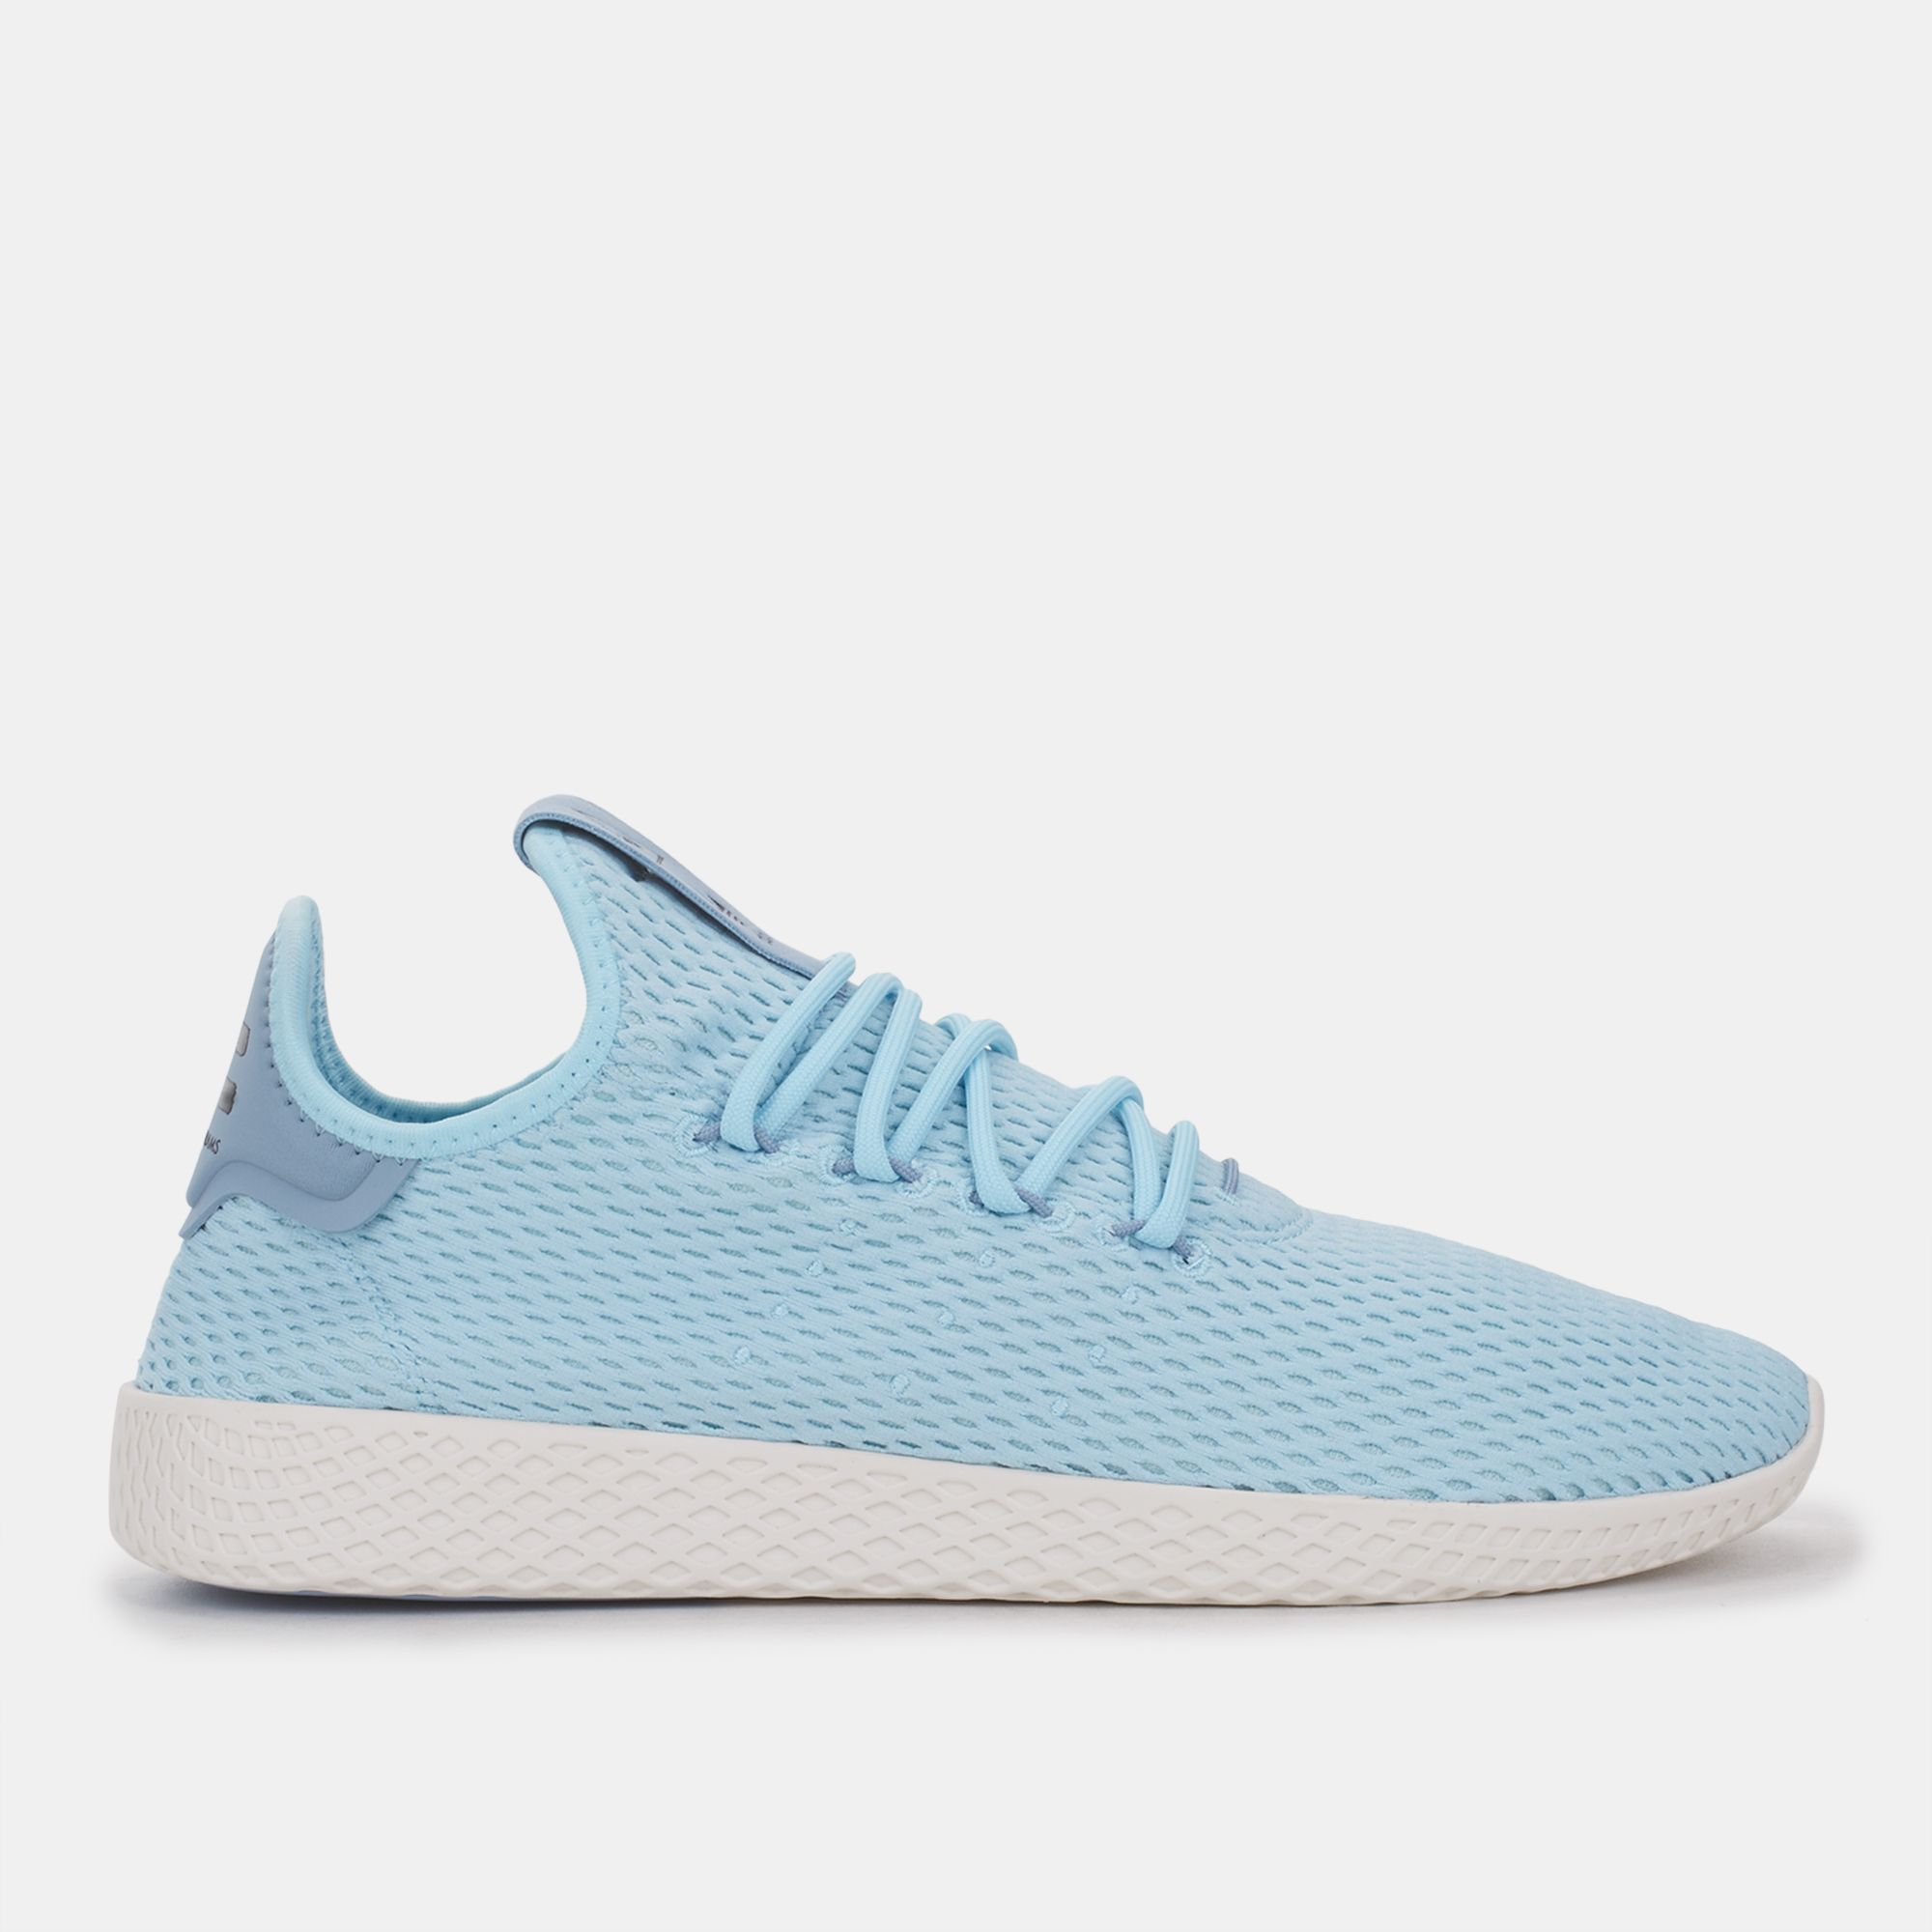 9f01e782b Shop Blue adidas Originals Pharrell Williams Tennis HU Shoe for Mens ...